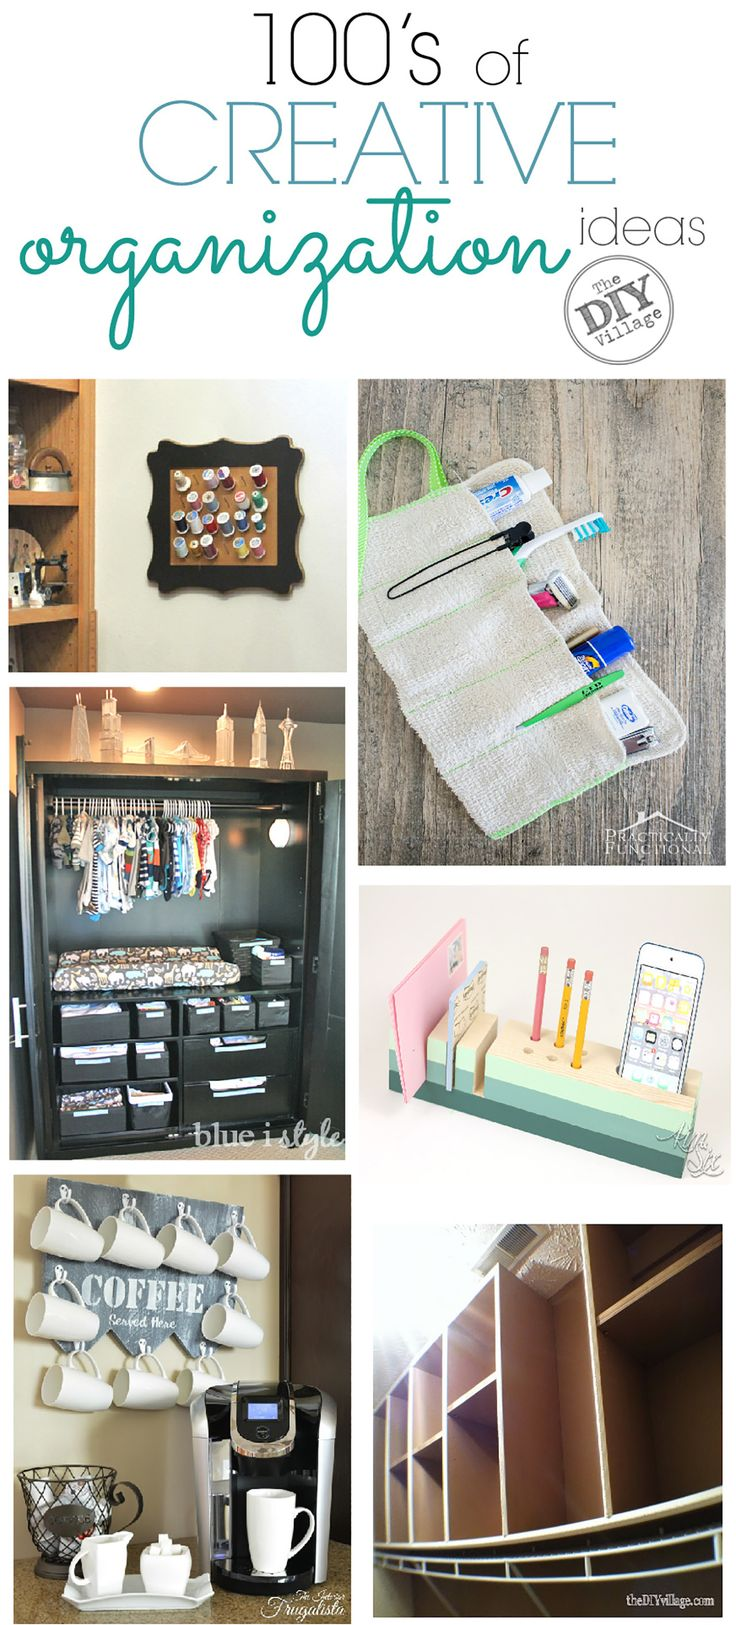 417 best the diy village projects images on pinterest for Creative organization